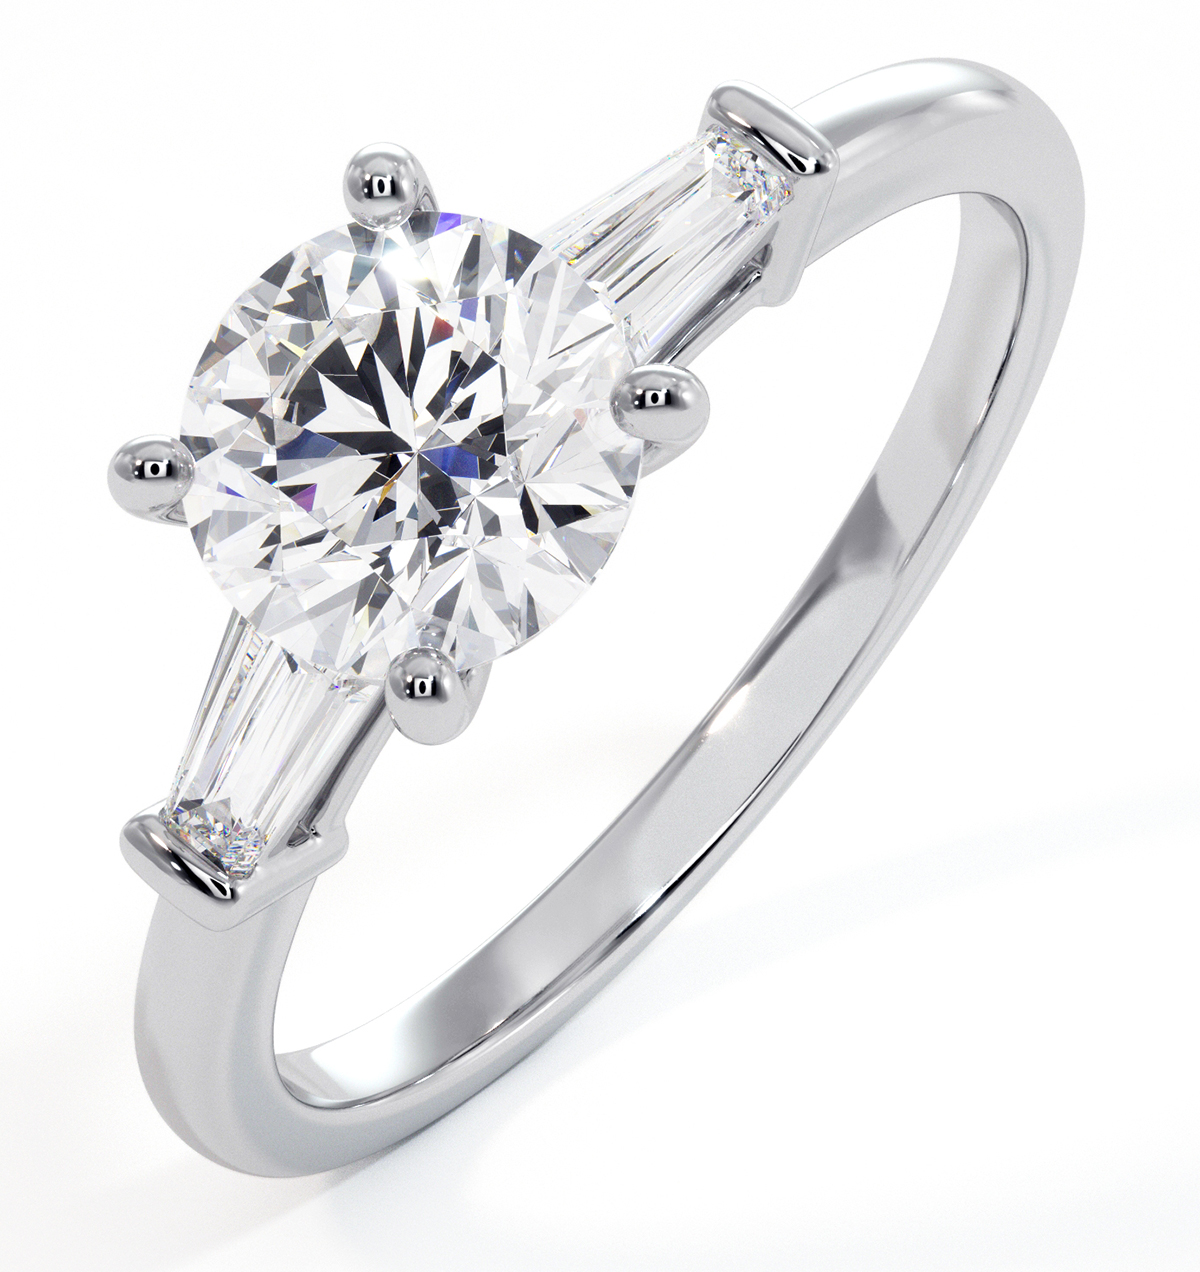 Isadora GIA Diamond Engagement Ring 18KW 1.10ct G/VS2 - image 1